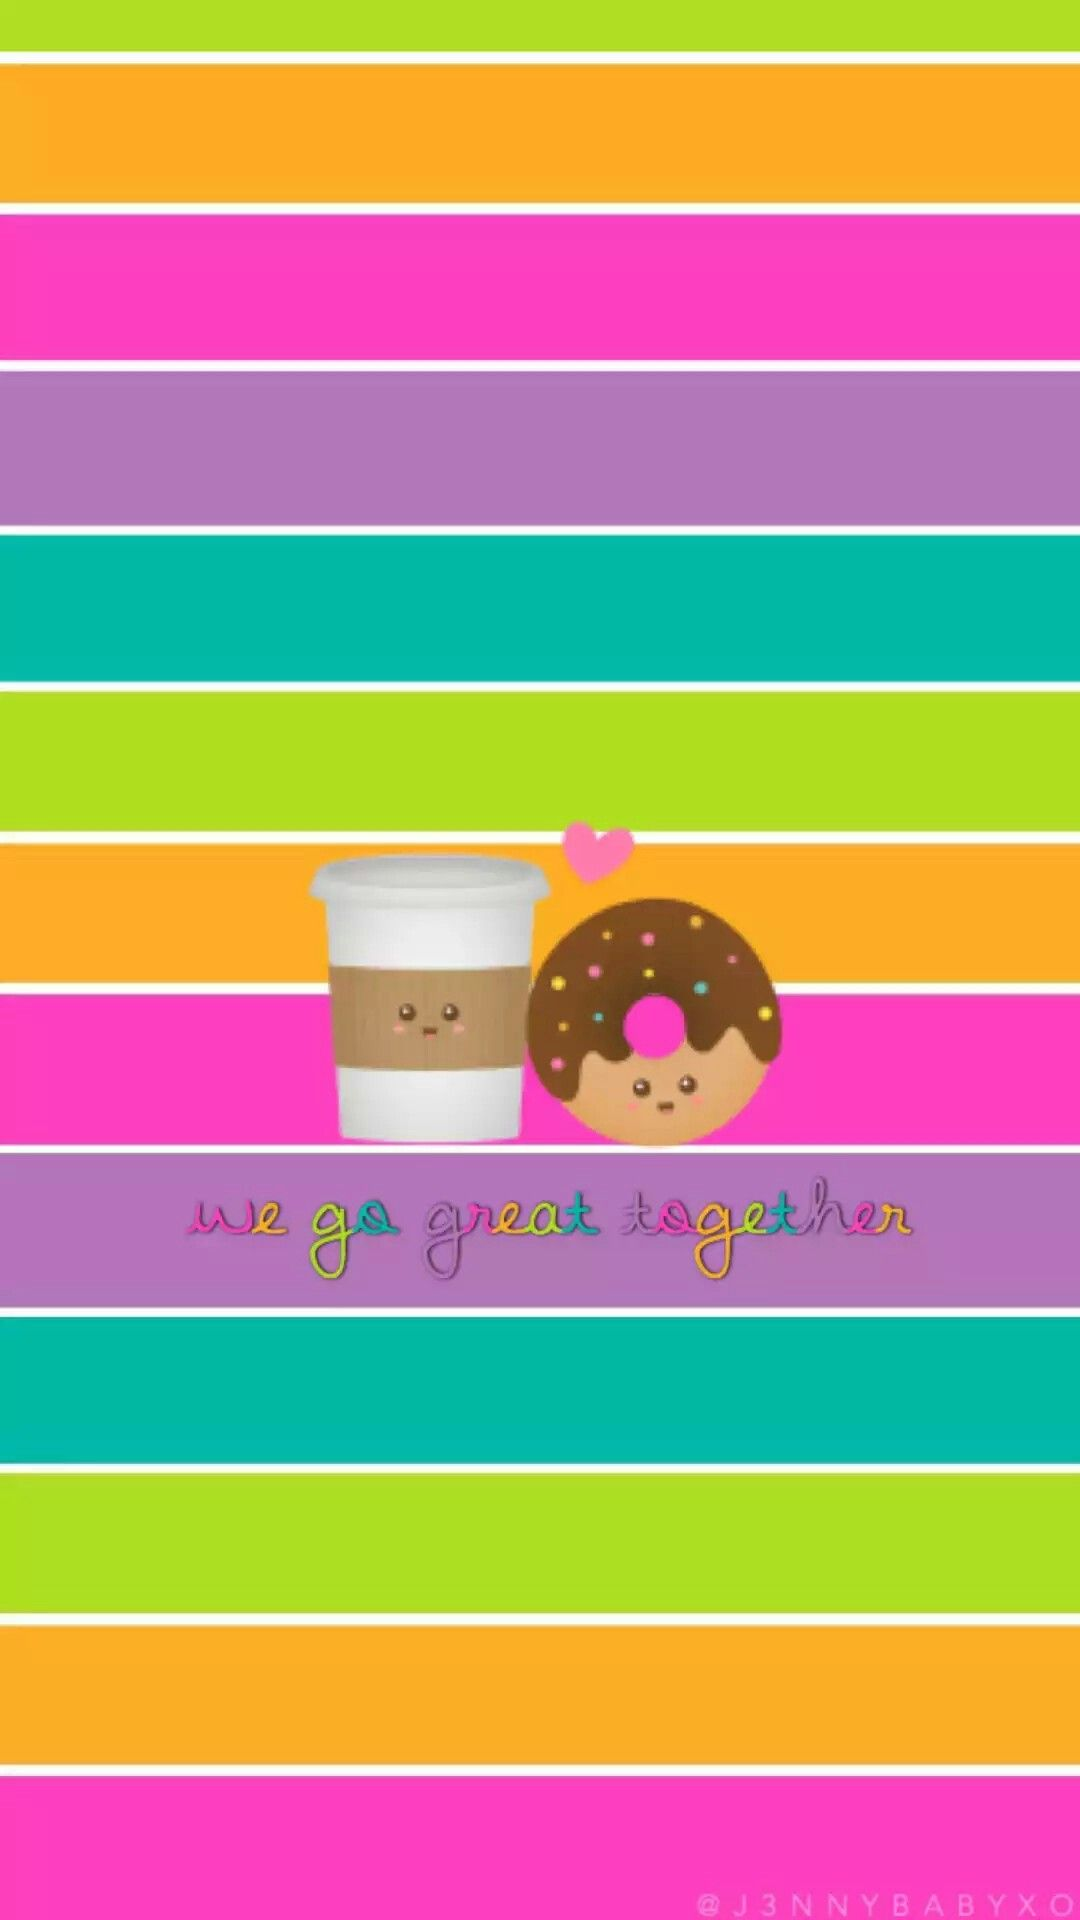 Simple Wallpaper Hello Kitty Donut - 5a8735a985e547752a326e5e21a05f8d  Perfect Image Reference_347517.jpg